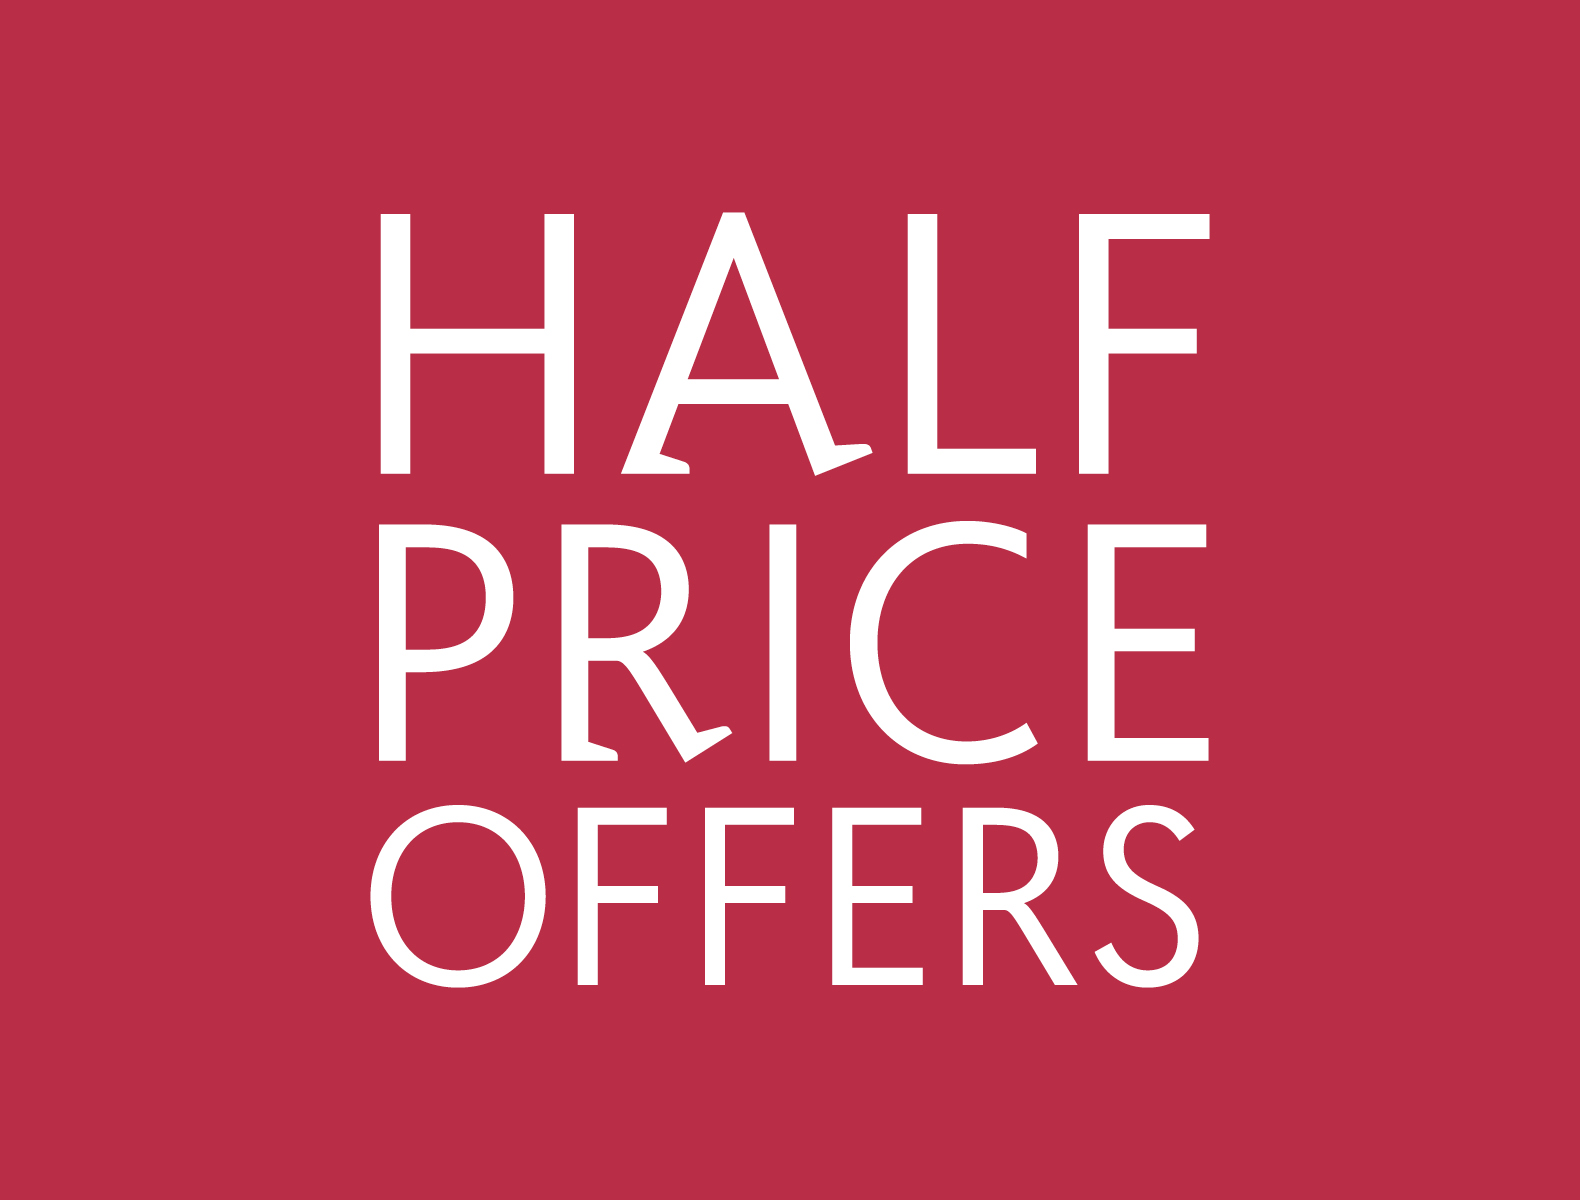 Shop our Half Price Offers